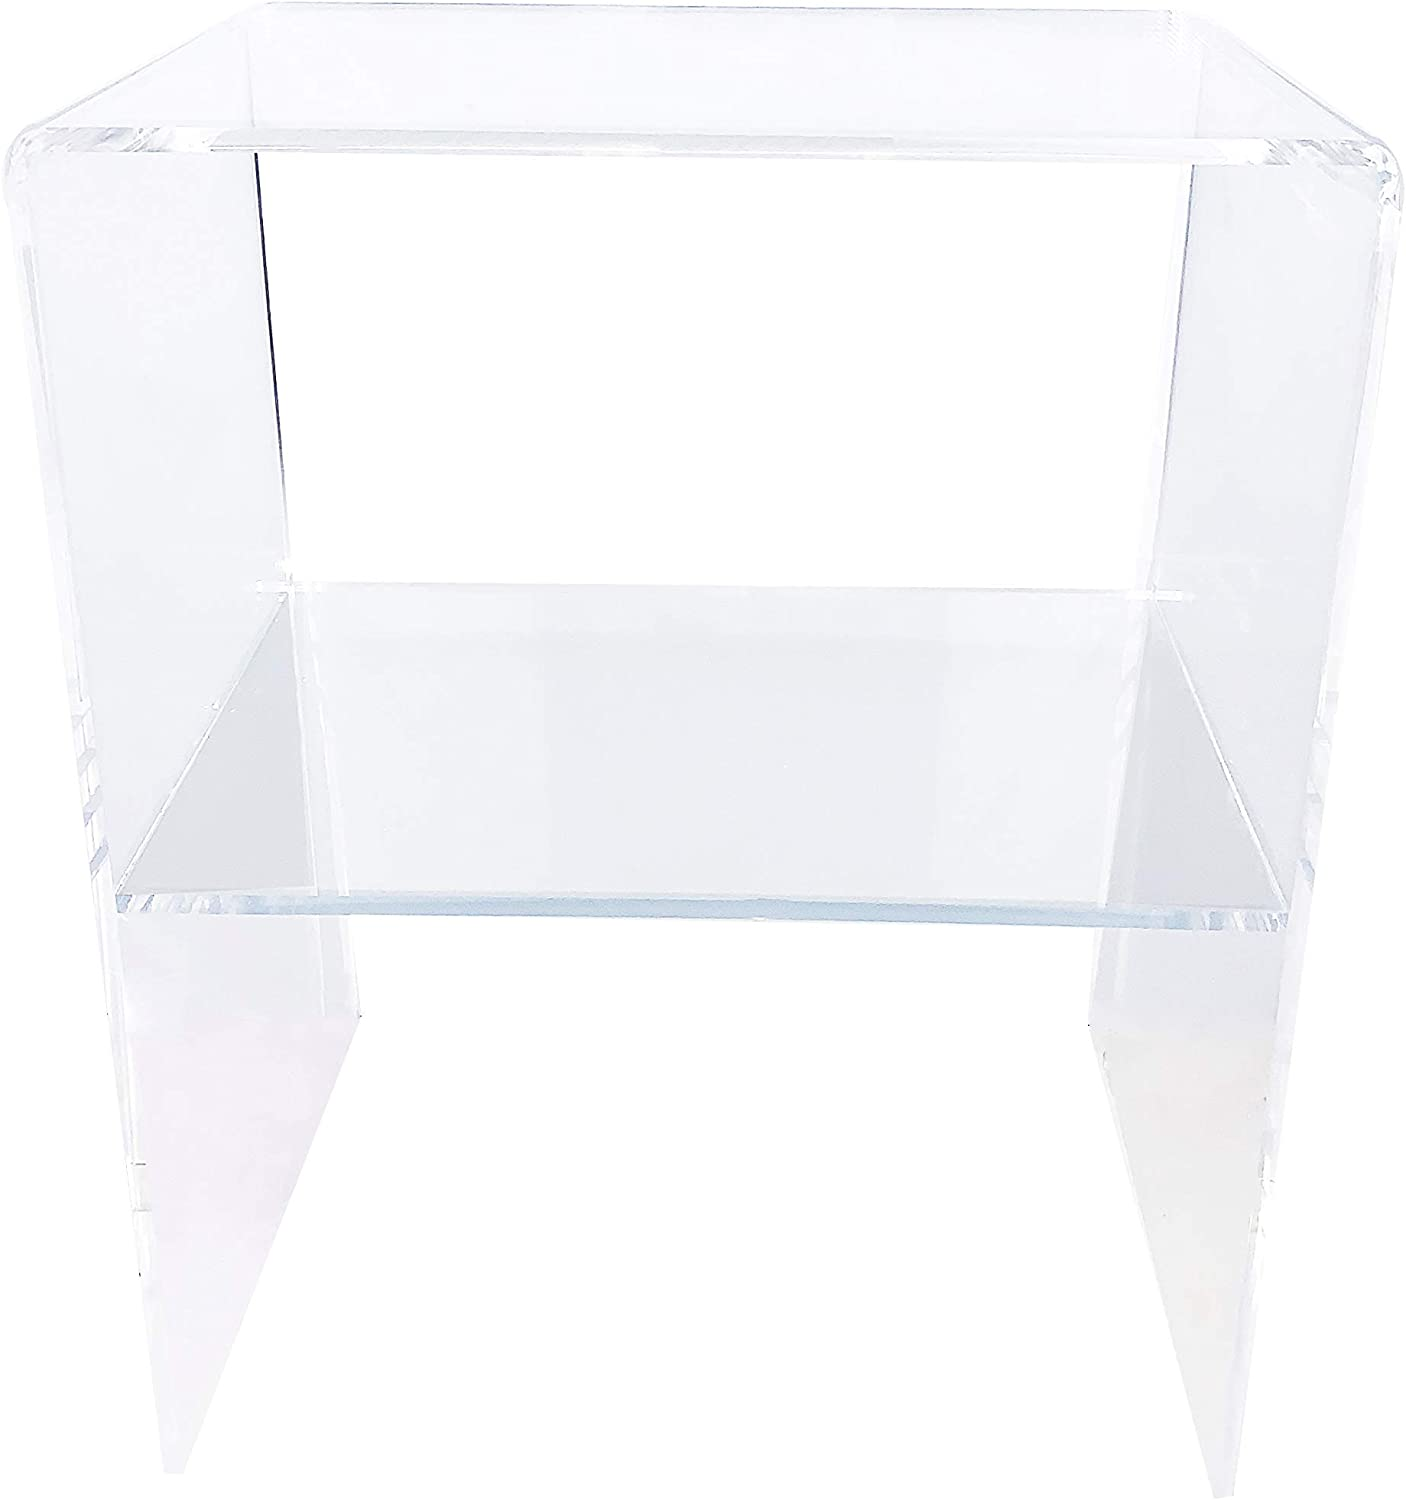 Clear Acrylic Decorative Nightstand - Made in USA - Modern Design Trendy Home End Table or Side Table with 2 Shelves - 3/8 Inch Thick